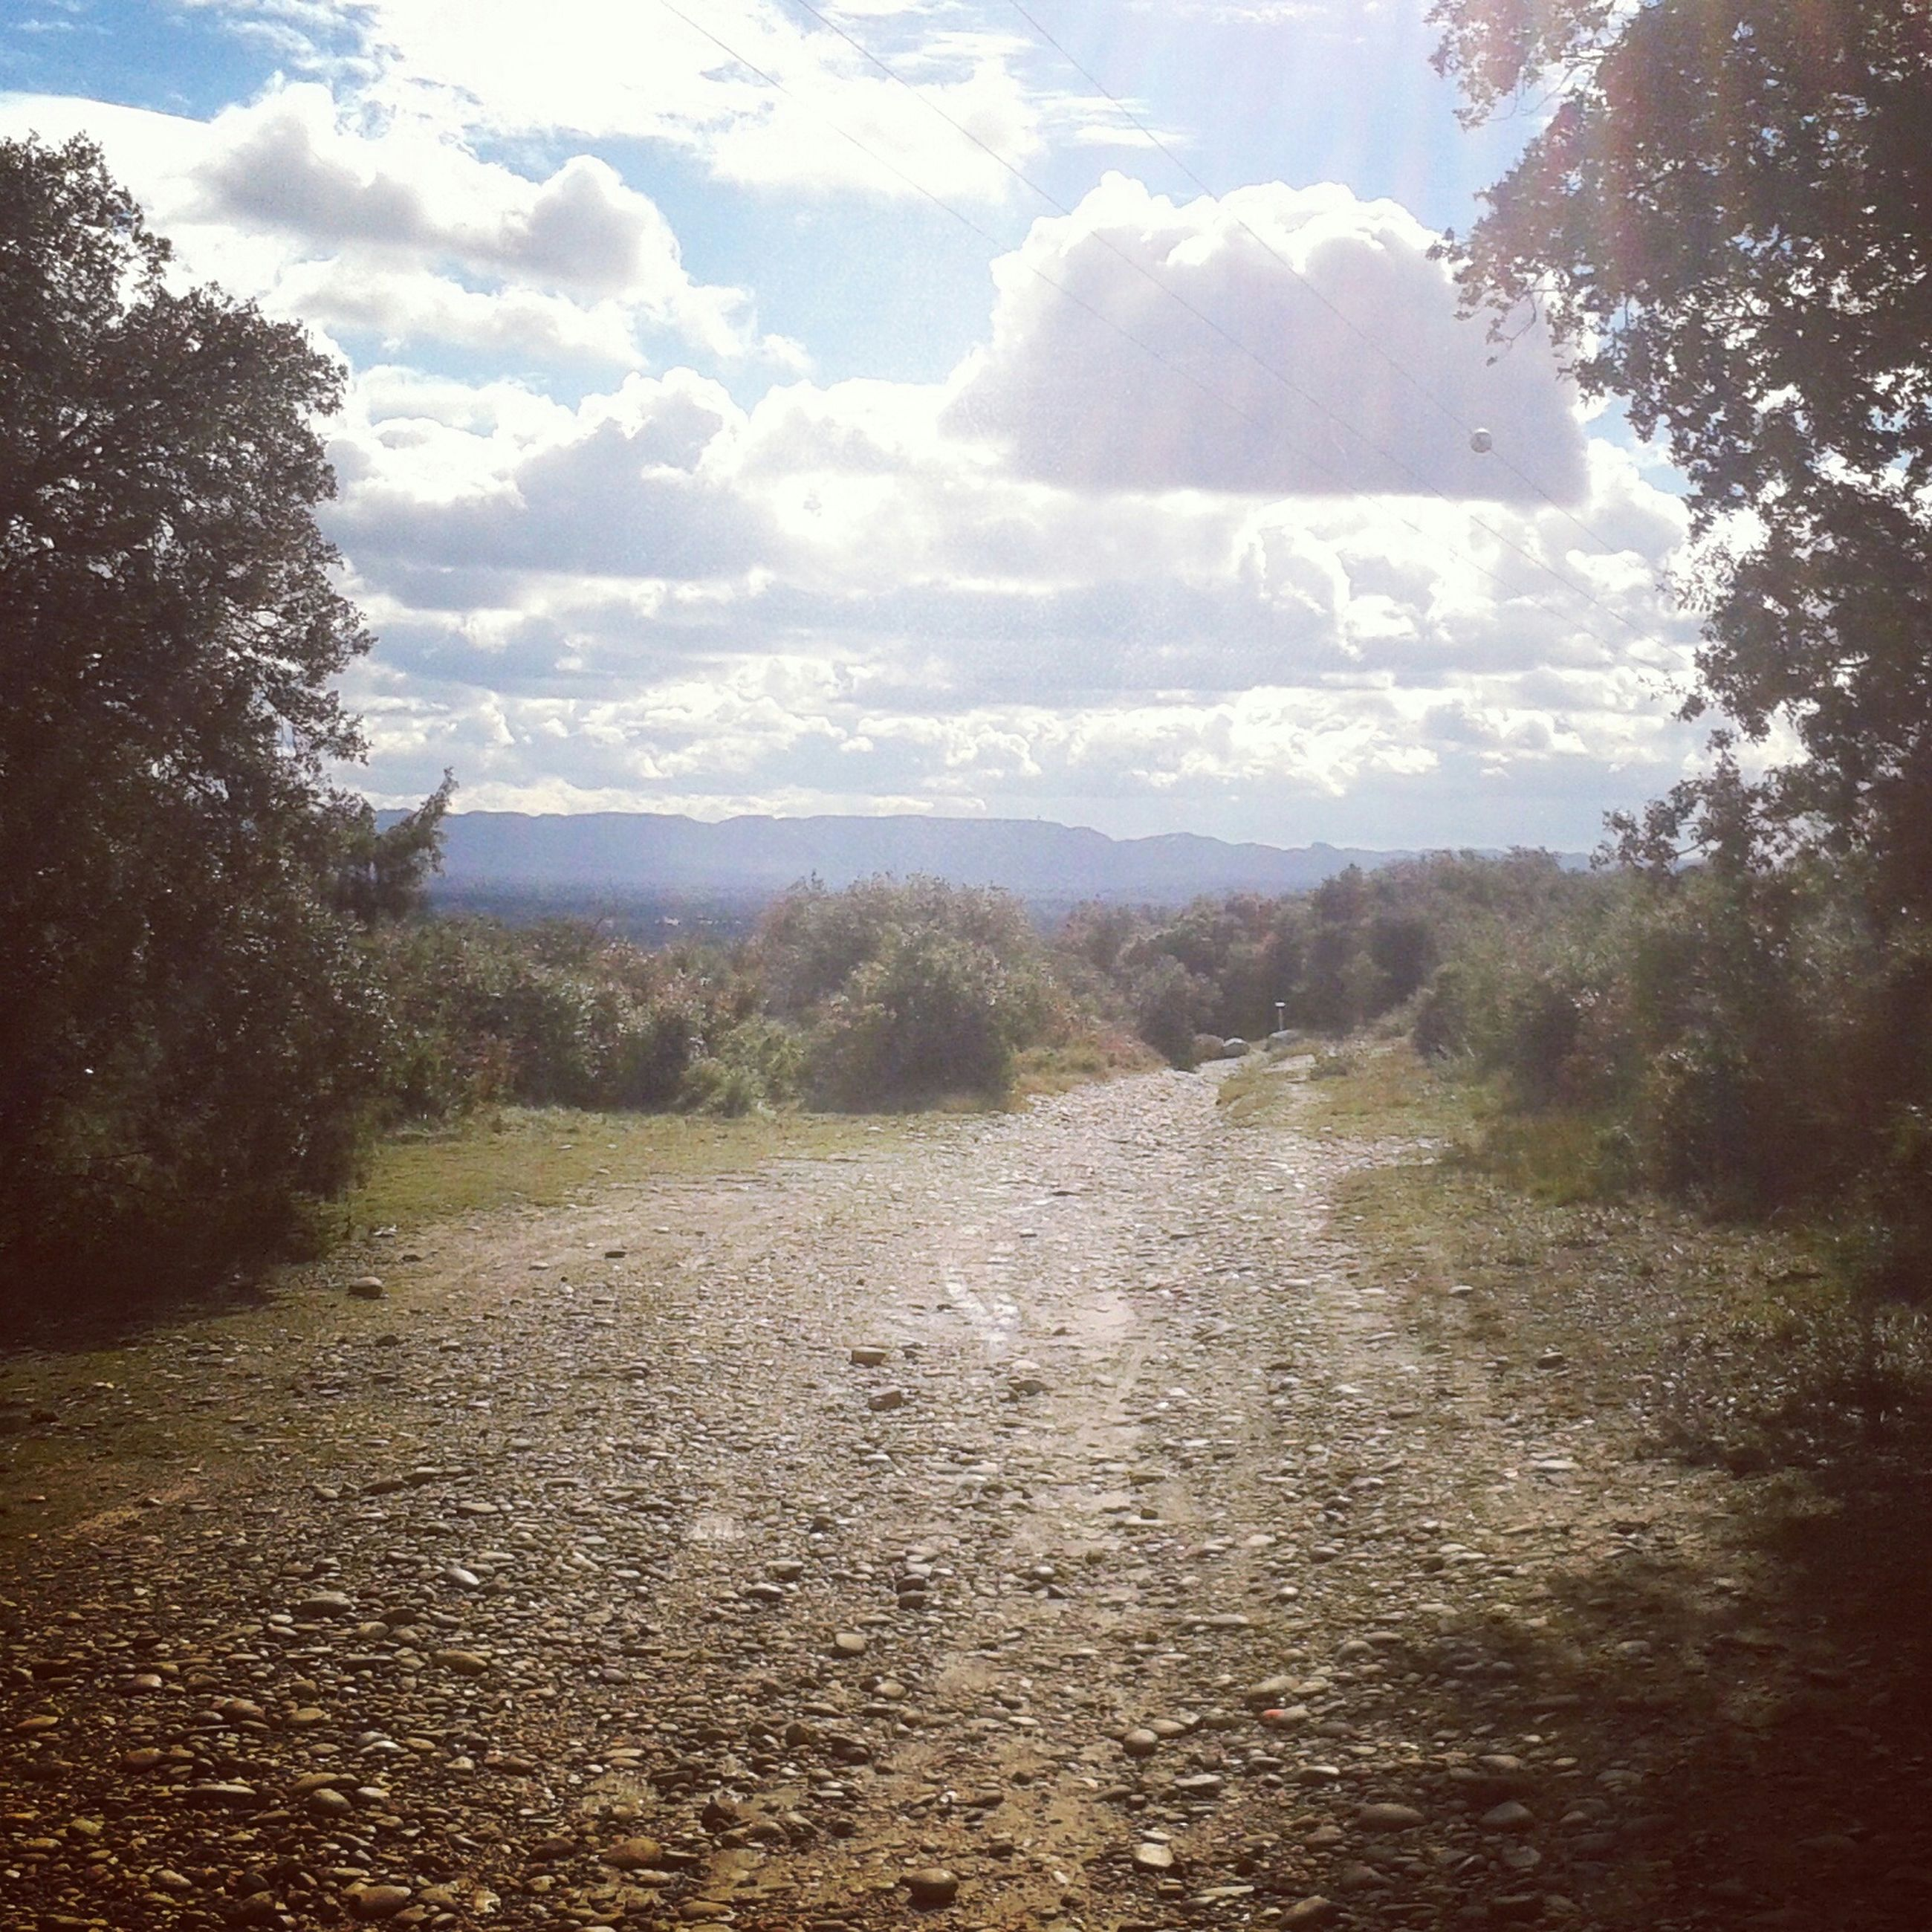 sky, tranquil scene, tranquility, tree, the way forward, cloud - sky, landscape, dirt road, scenics, nature, beauty in nature, cloud, non-urban scene, diminishing perspective, road, cloudy, day, field, outdoors, vanishing point